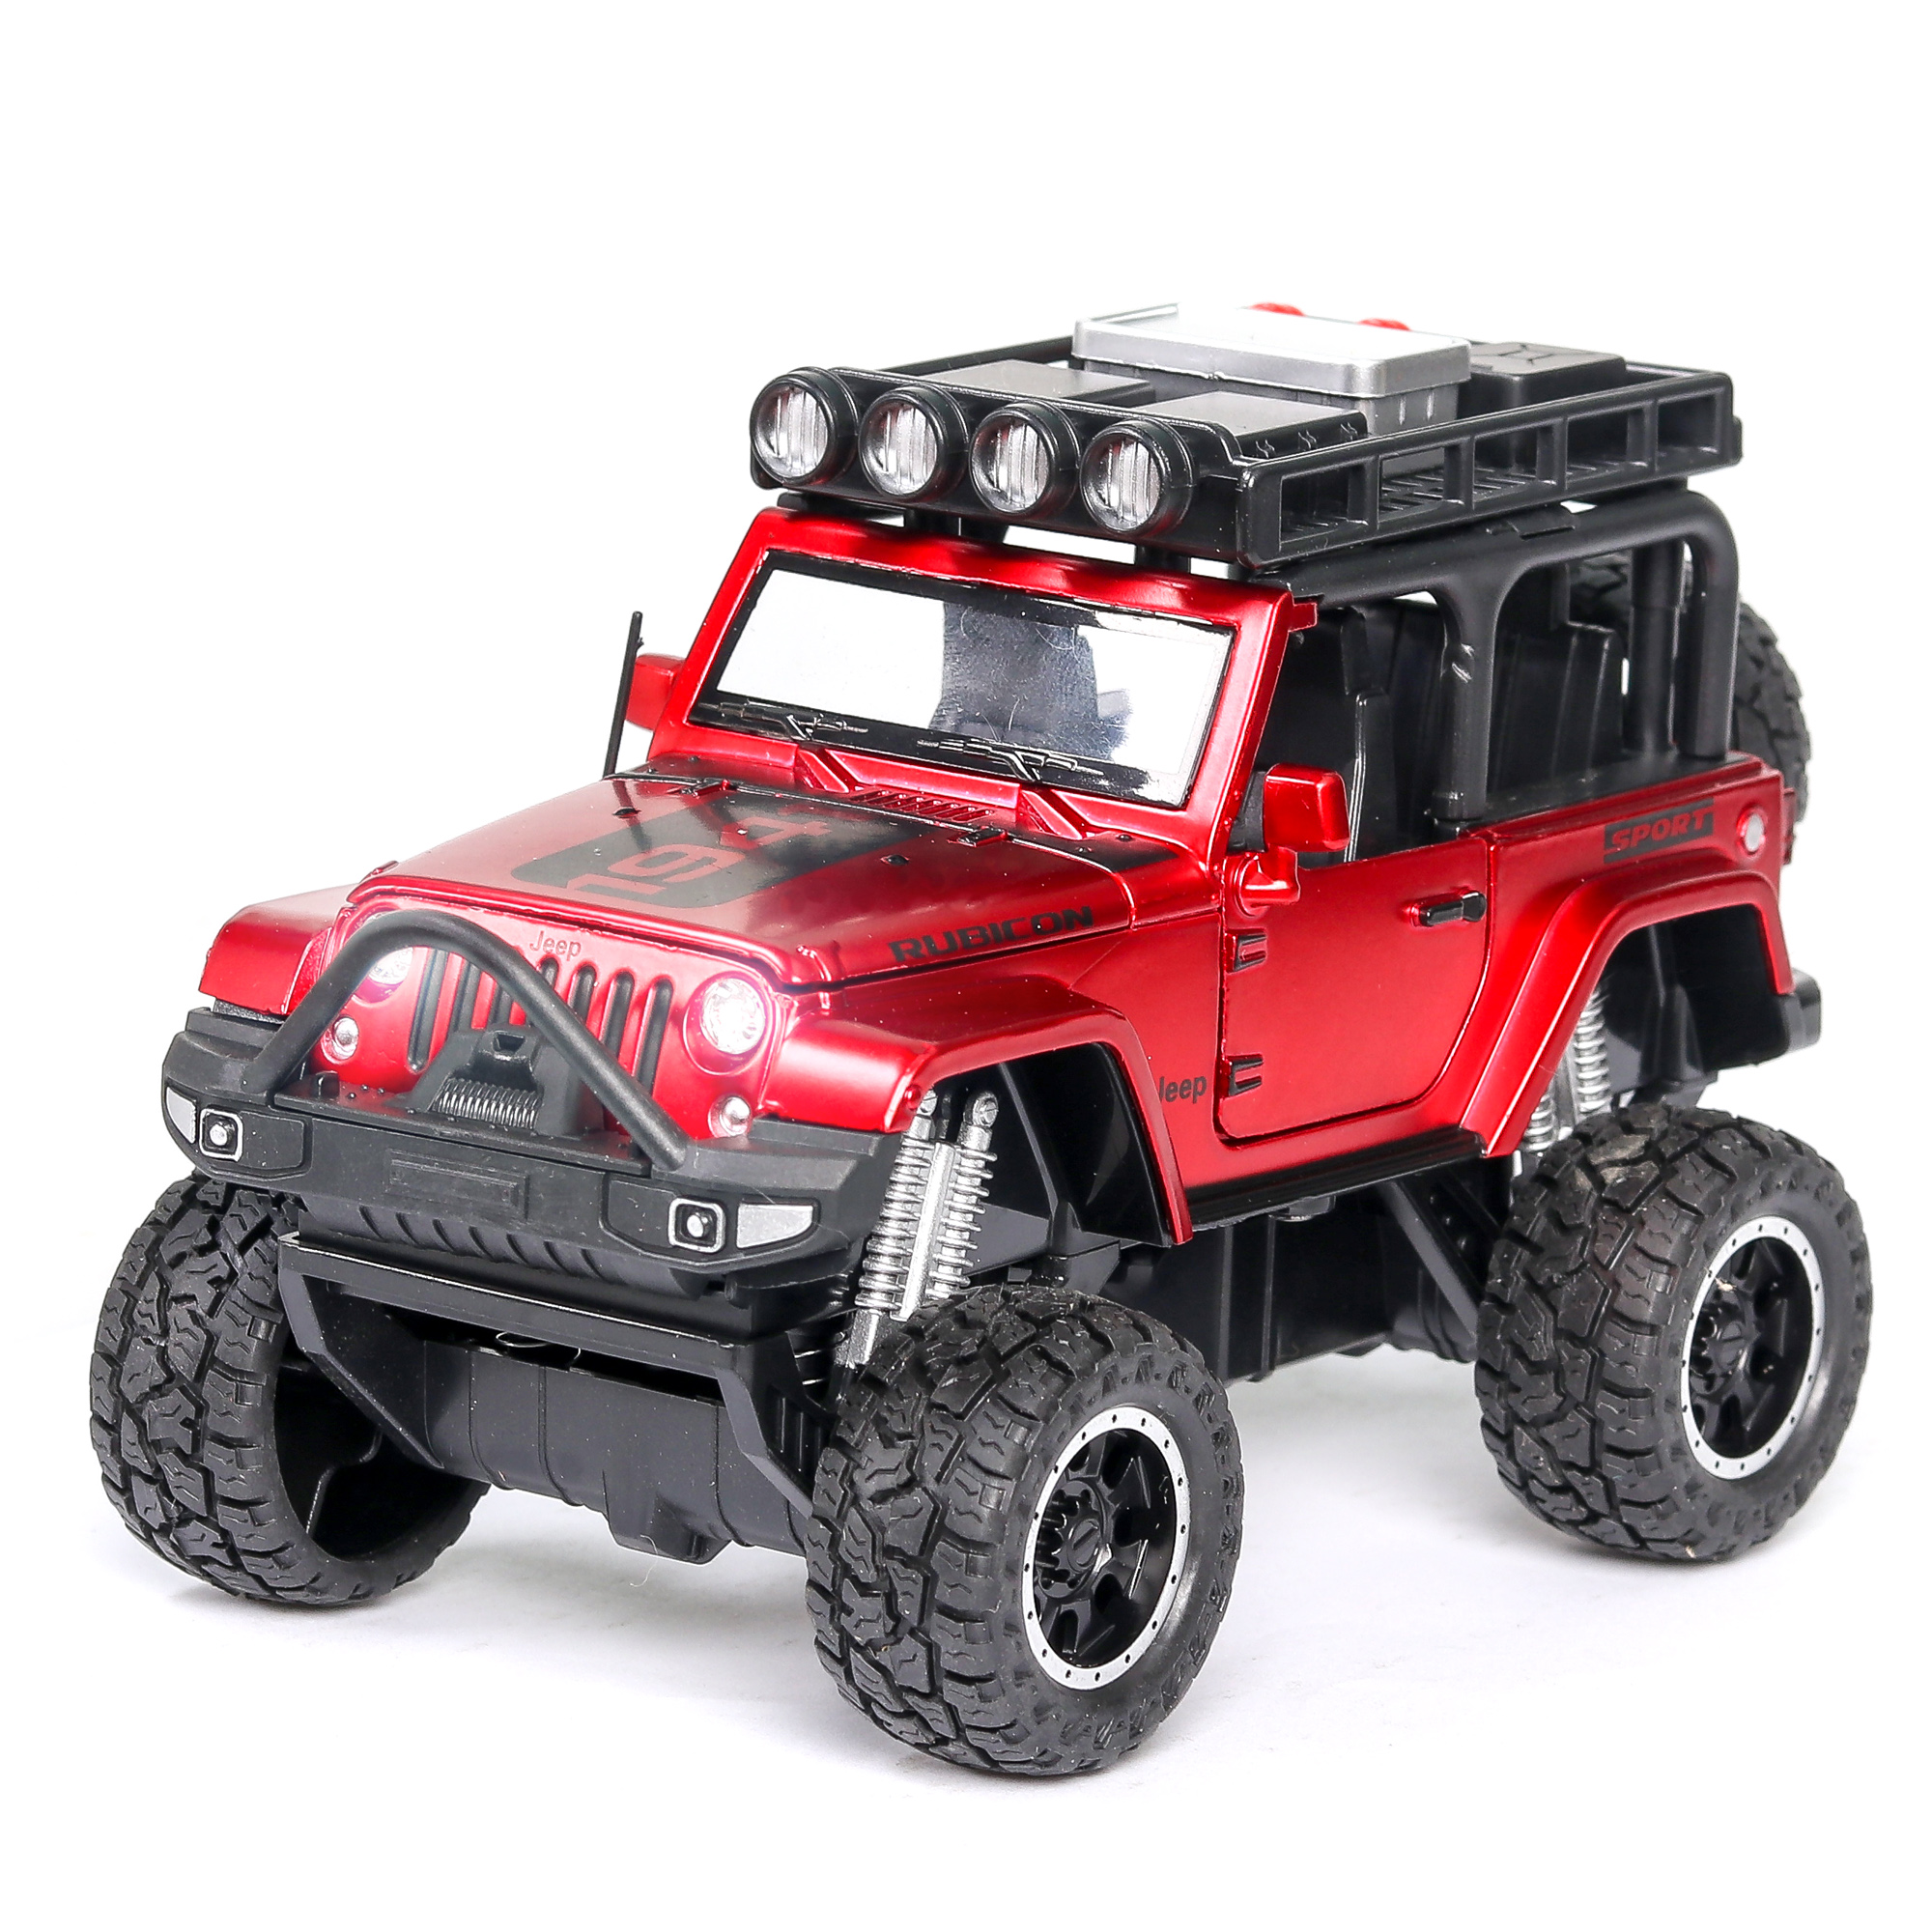 1:32 Hot High Simulation Jeeps Wrangler Big Wheel Diecasts Toy Vehicles With Sound And Light Car Model For Children Gifts Toys